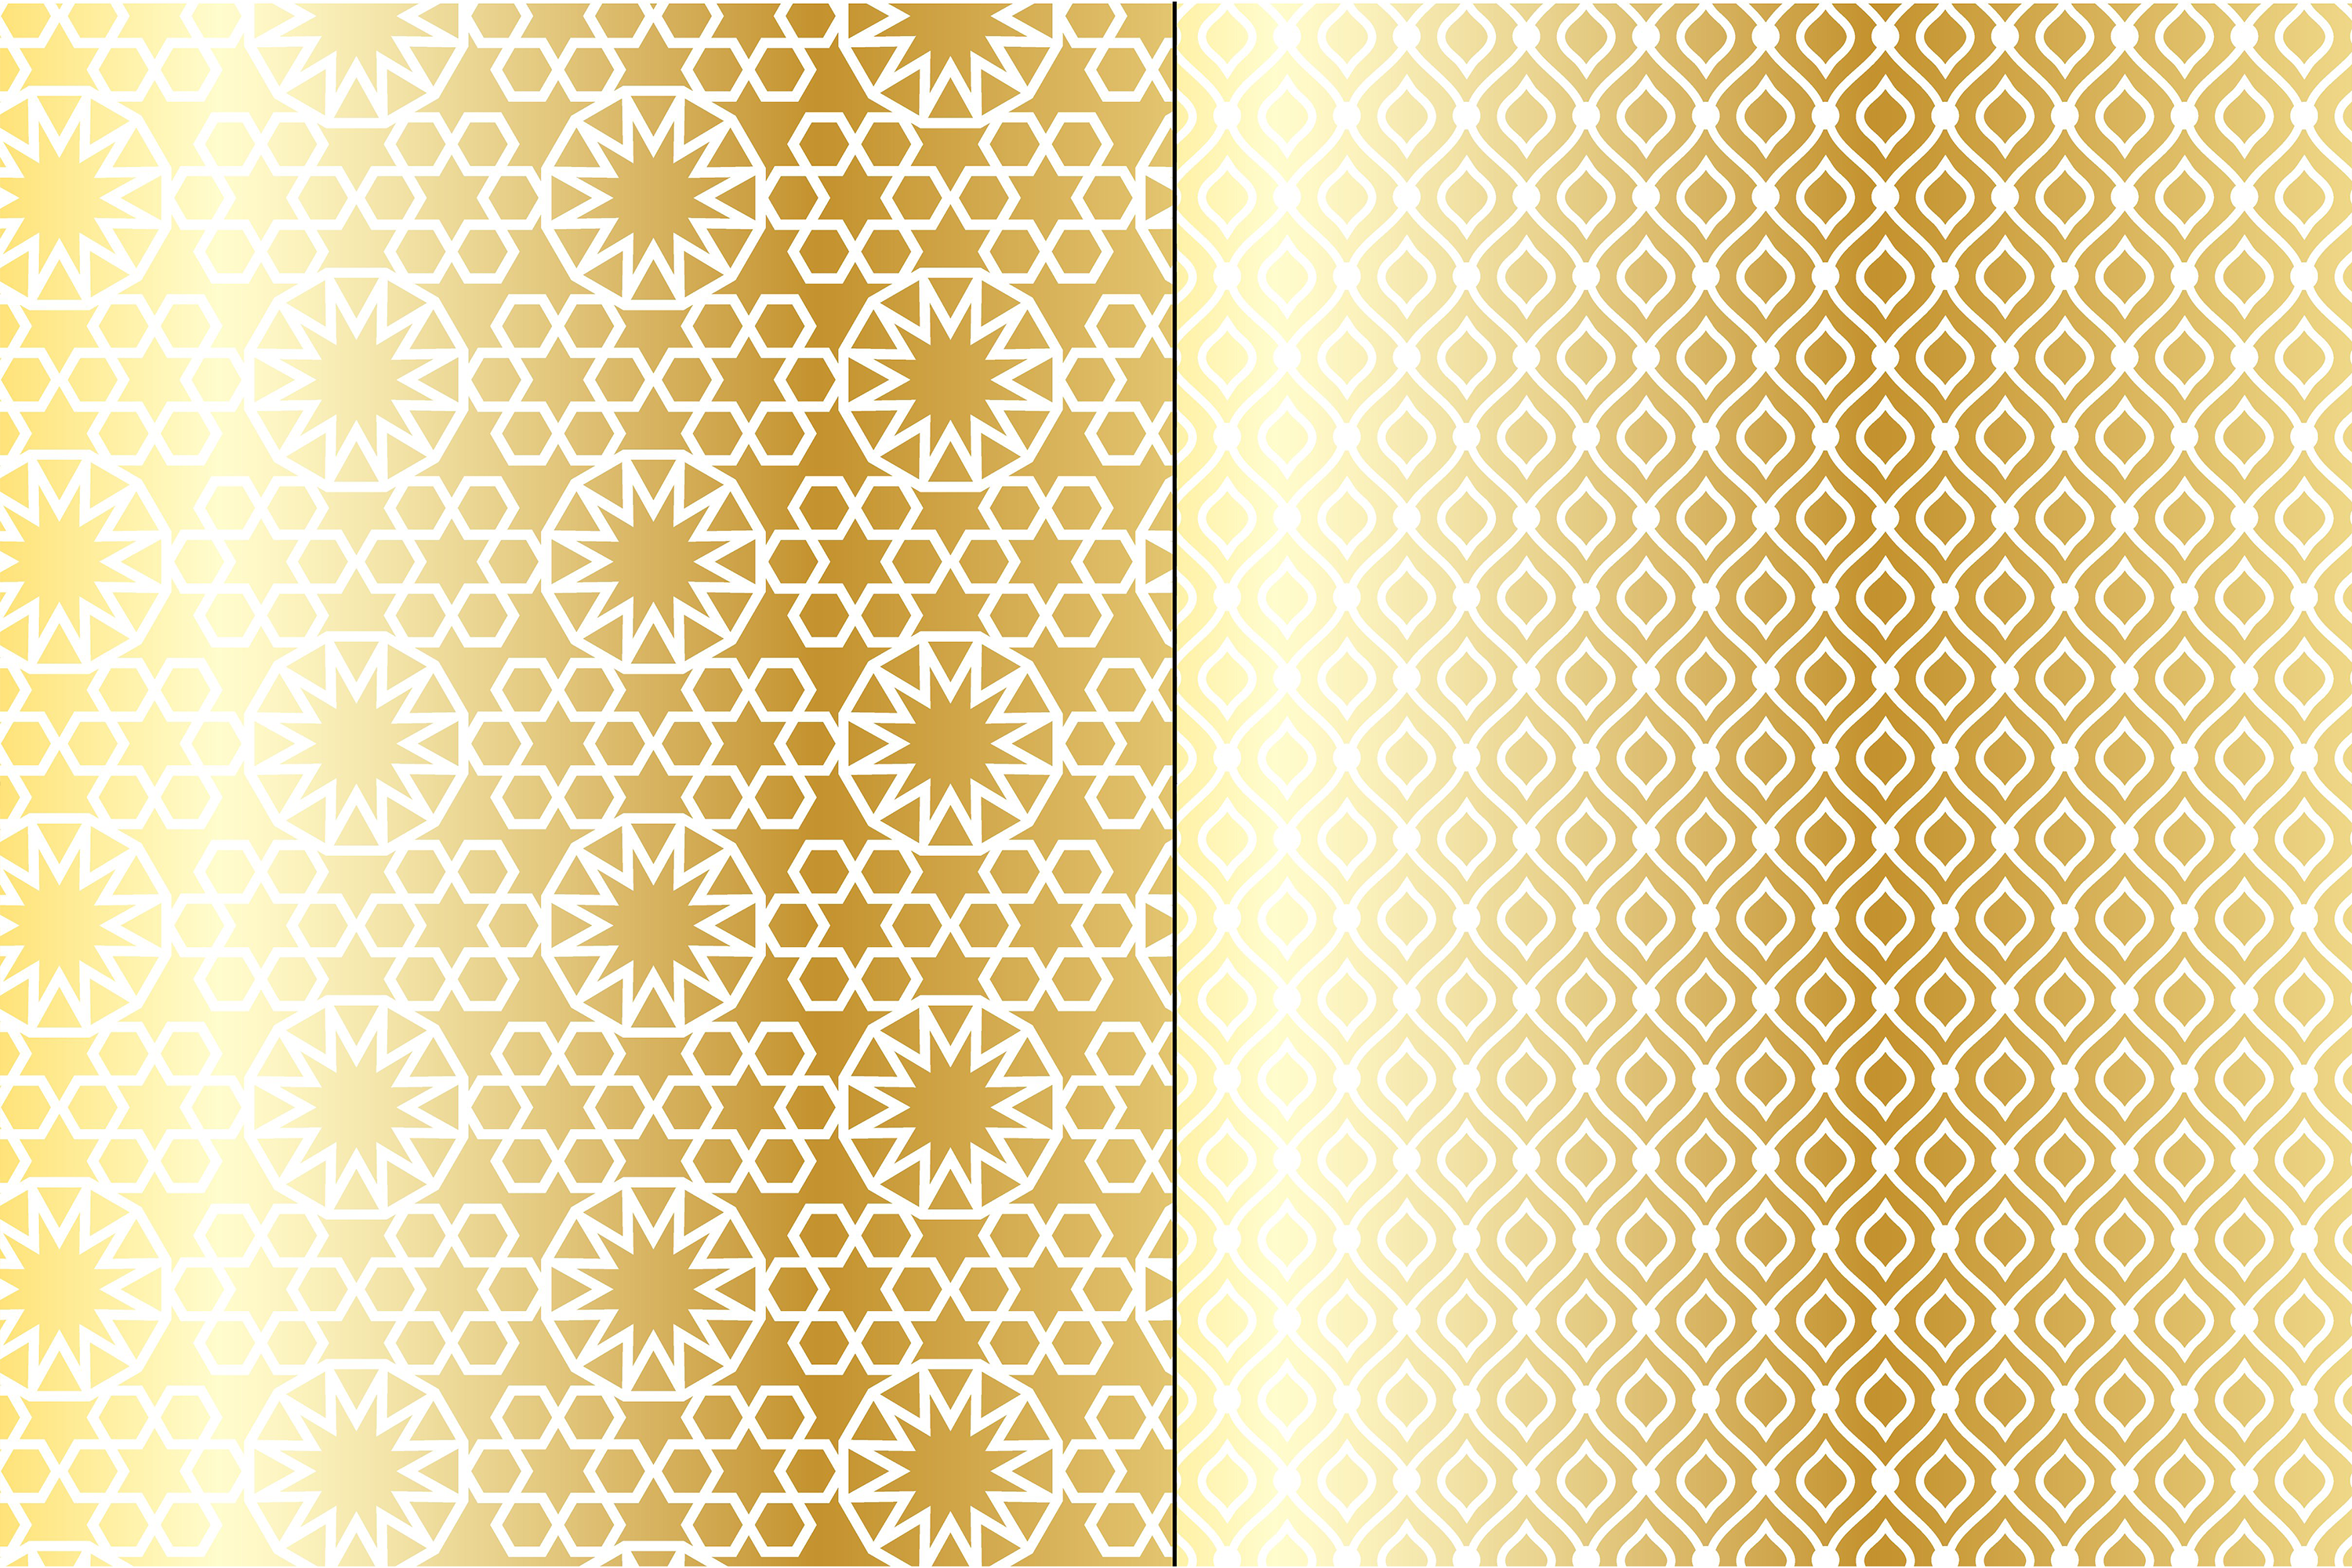 Metallic Gold Moroccan Patterns example image 3